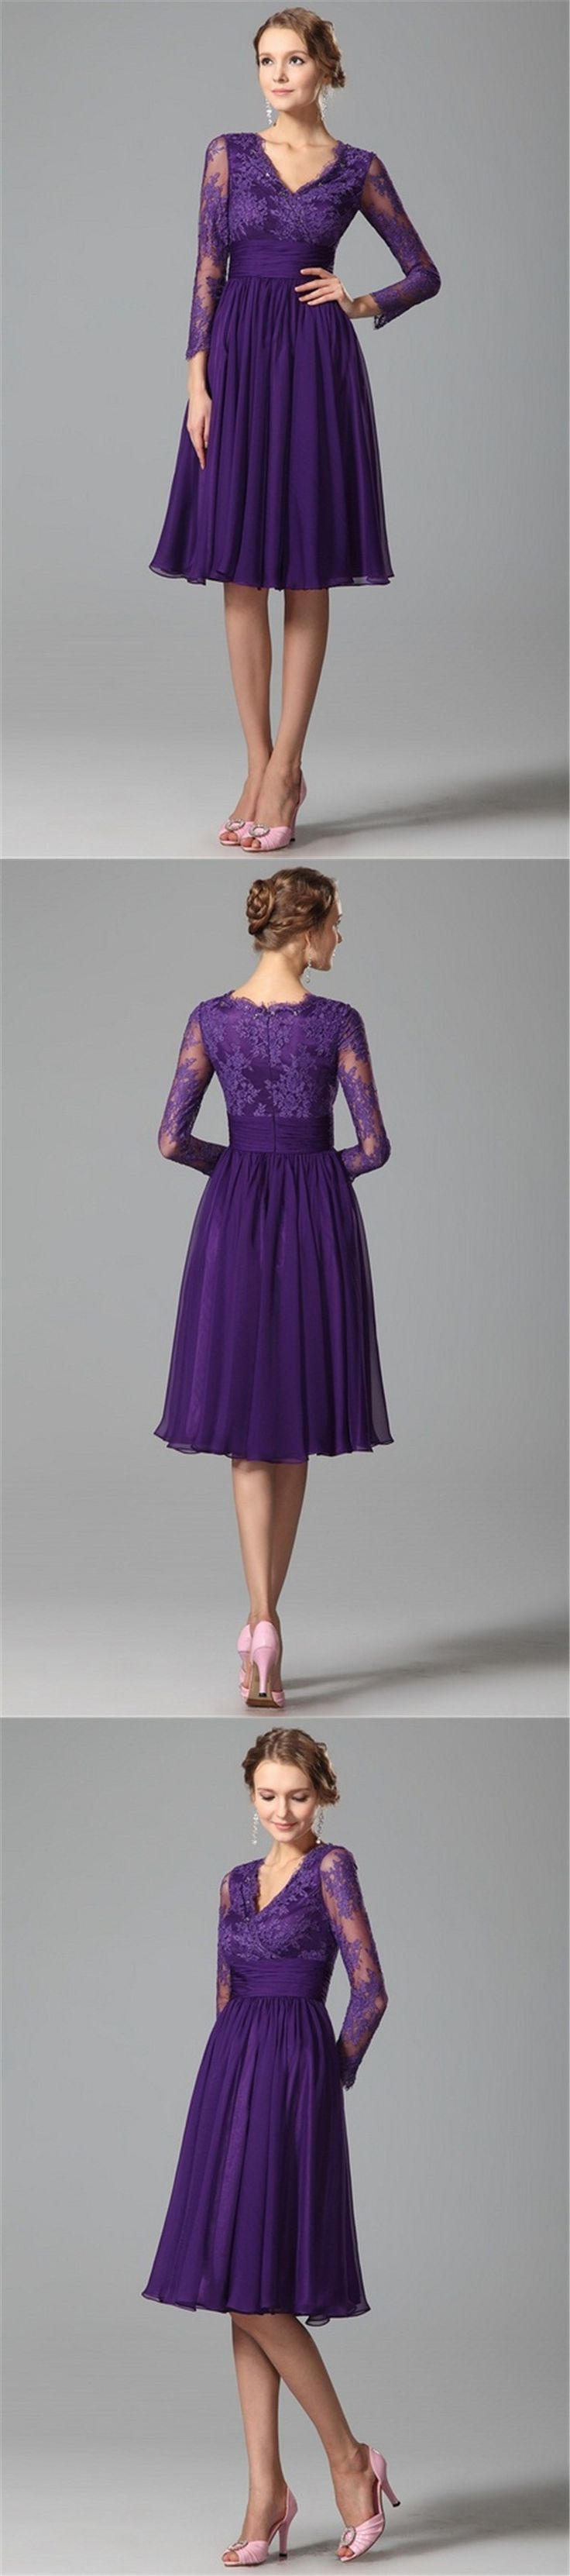 Purple bridesmaid dresses 2016 lace 3 4 long sleeves v for Cheap wedding guest dresses